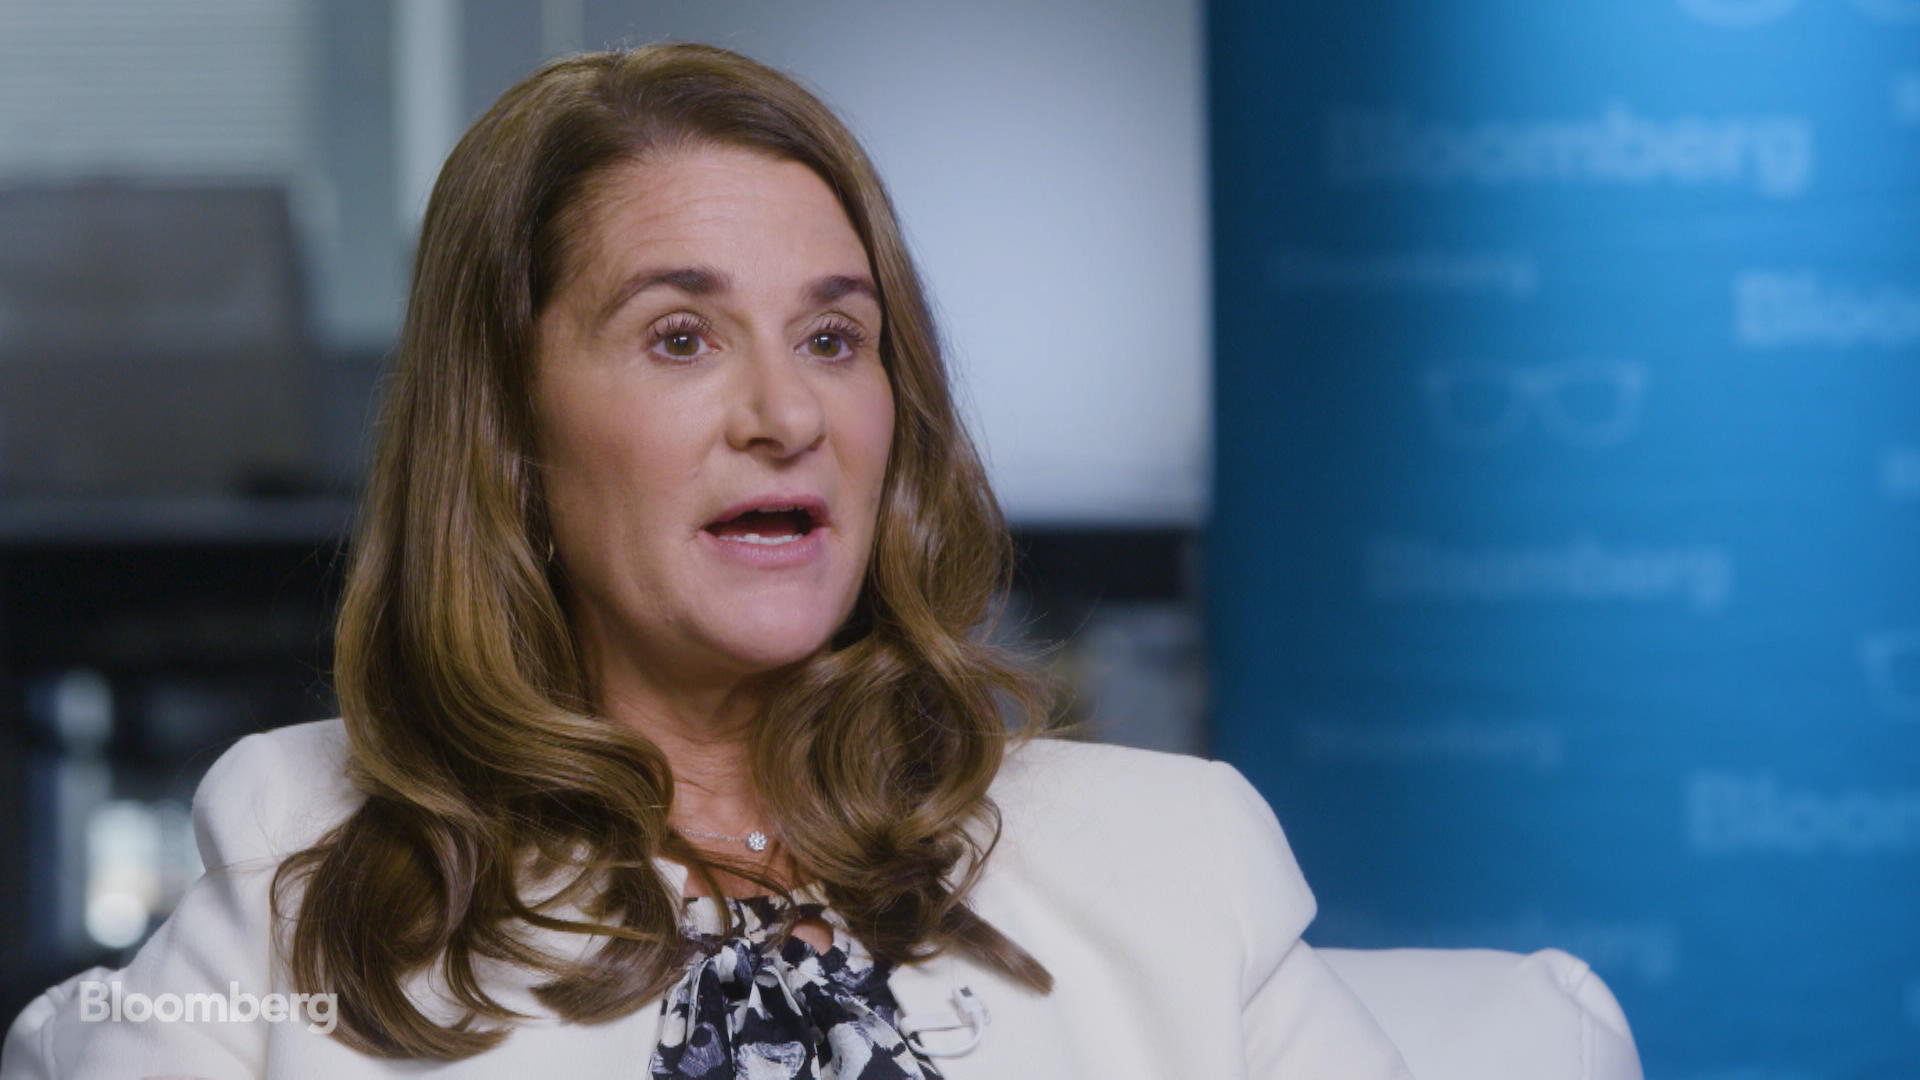 Melinda Gates was late for a dinner party - and met her future husband